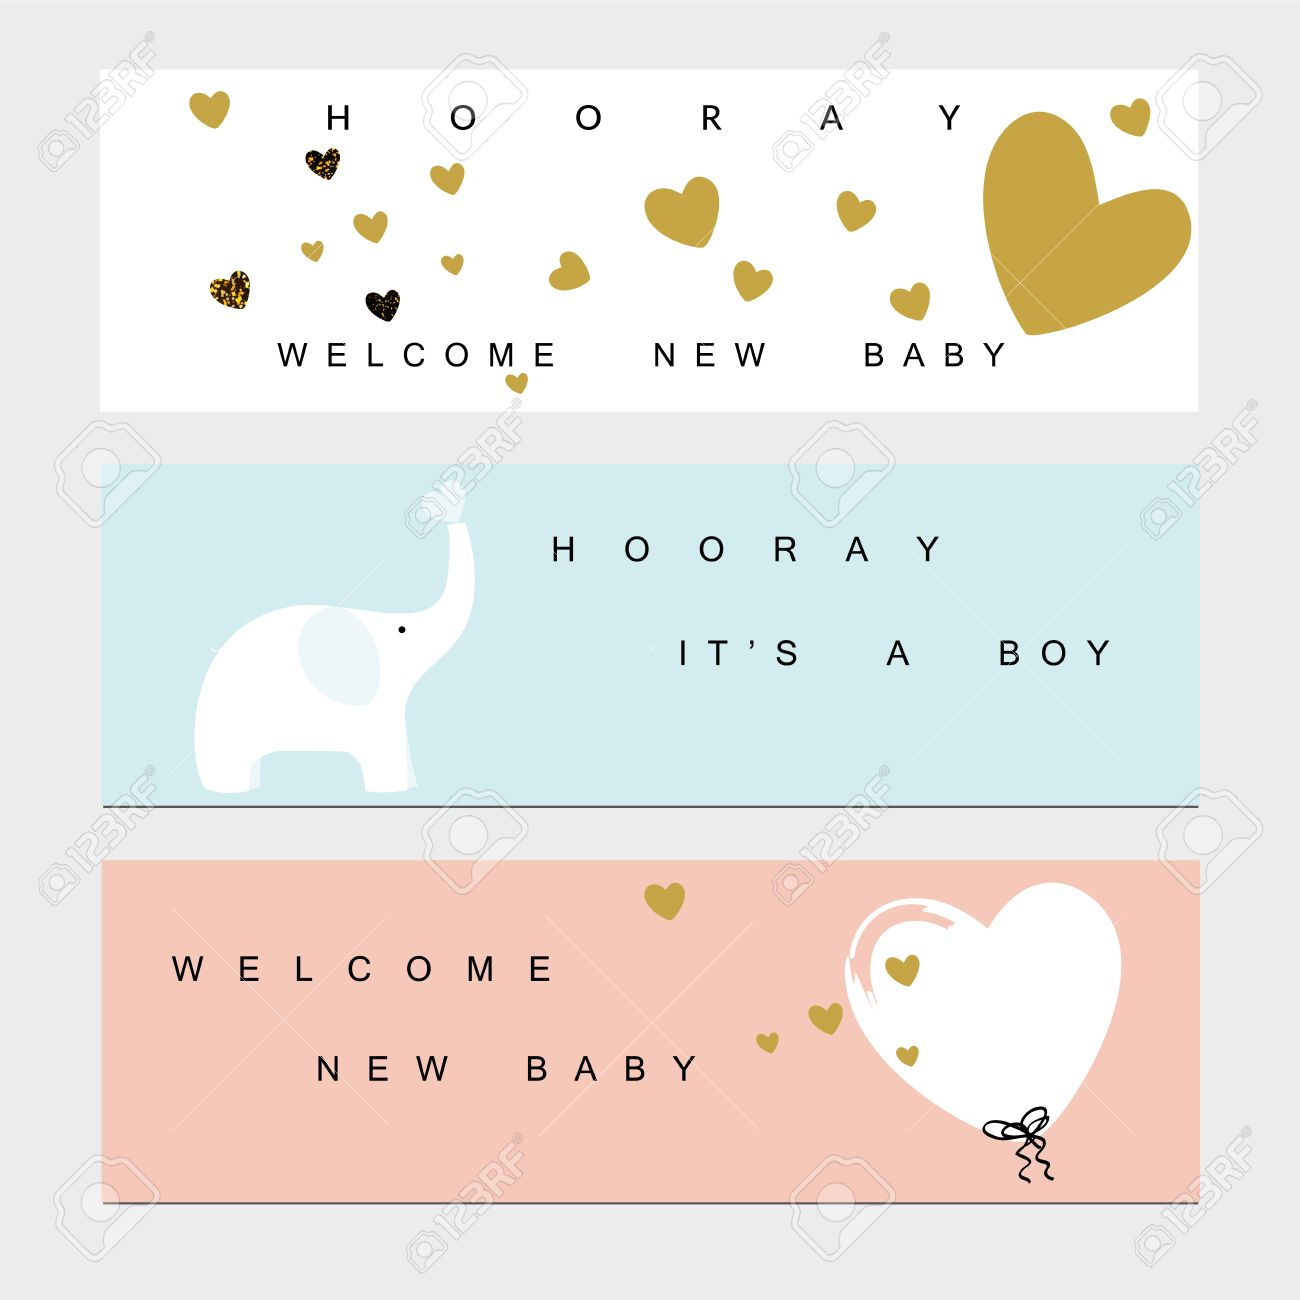 baby shower banners for the baby boy and girl royalty free cliparts